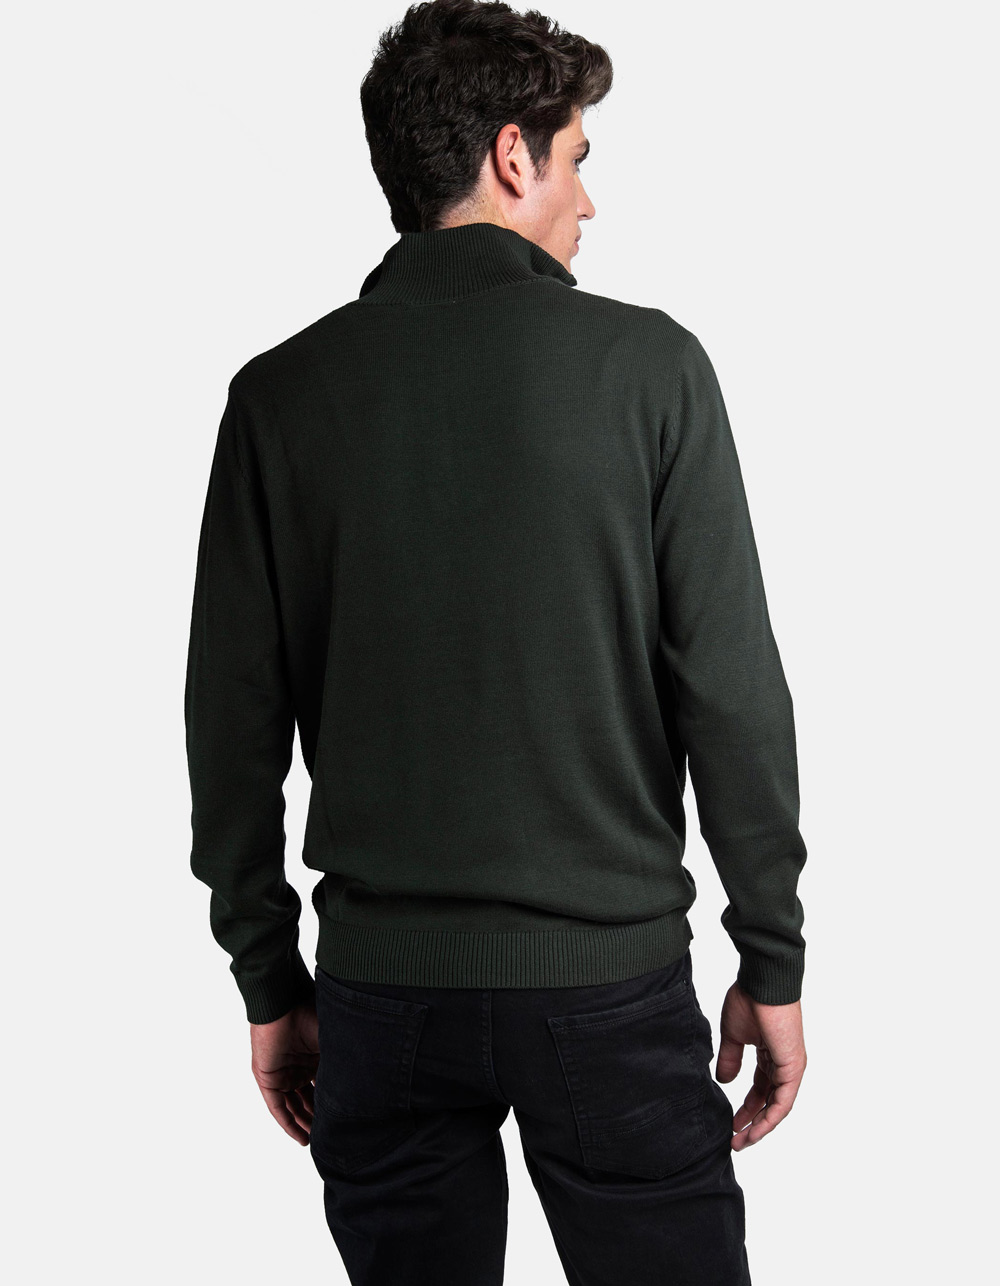 Dark green neck sweater with zip - Backside